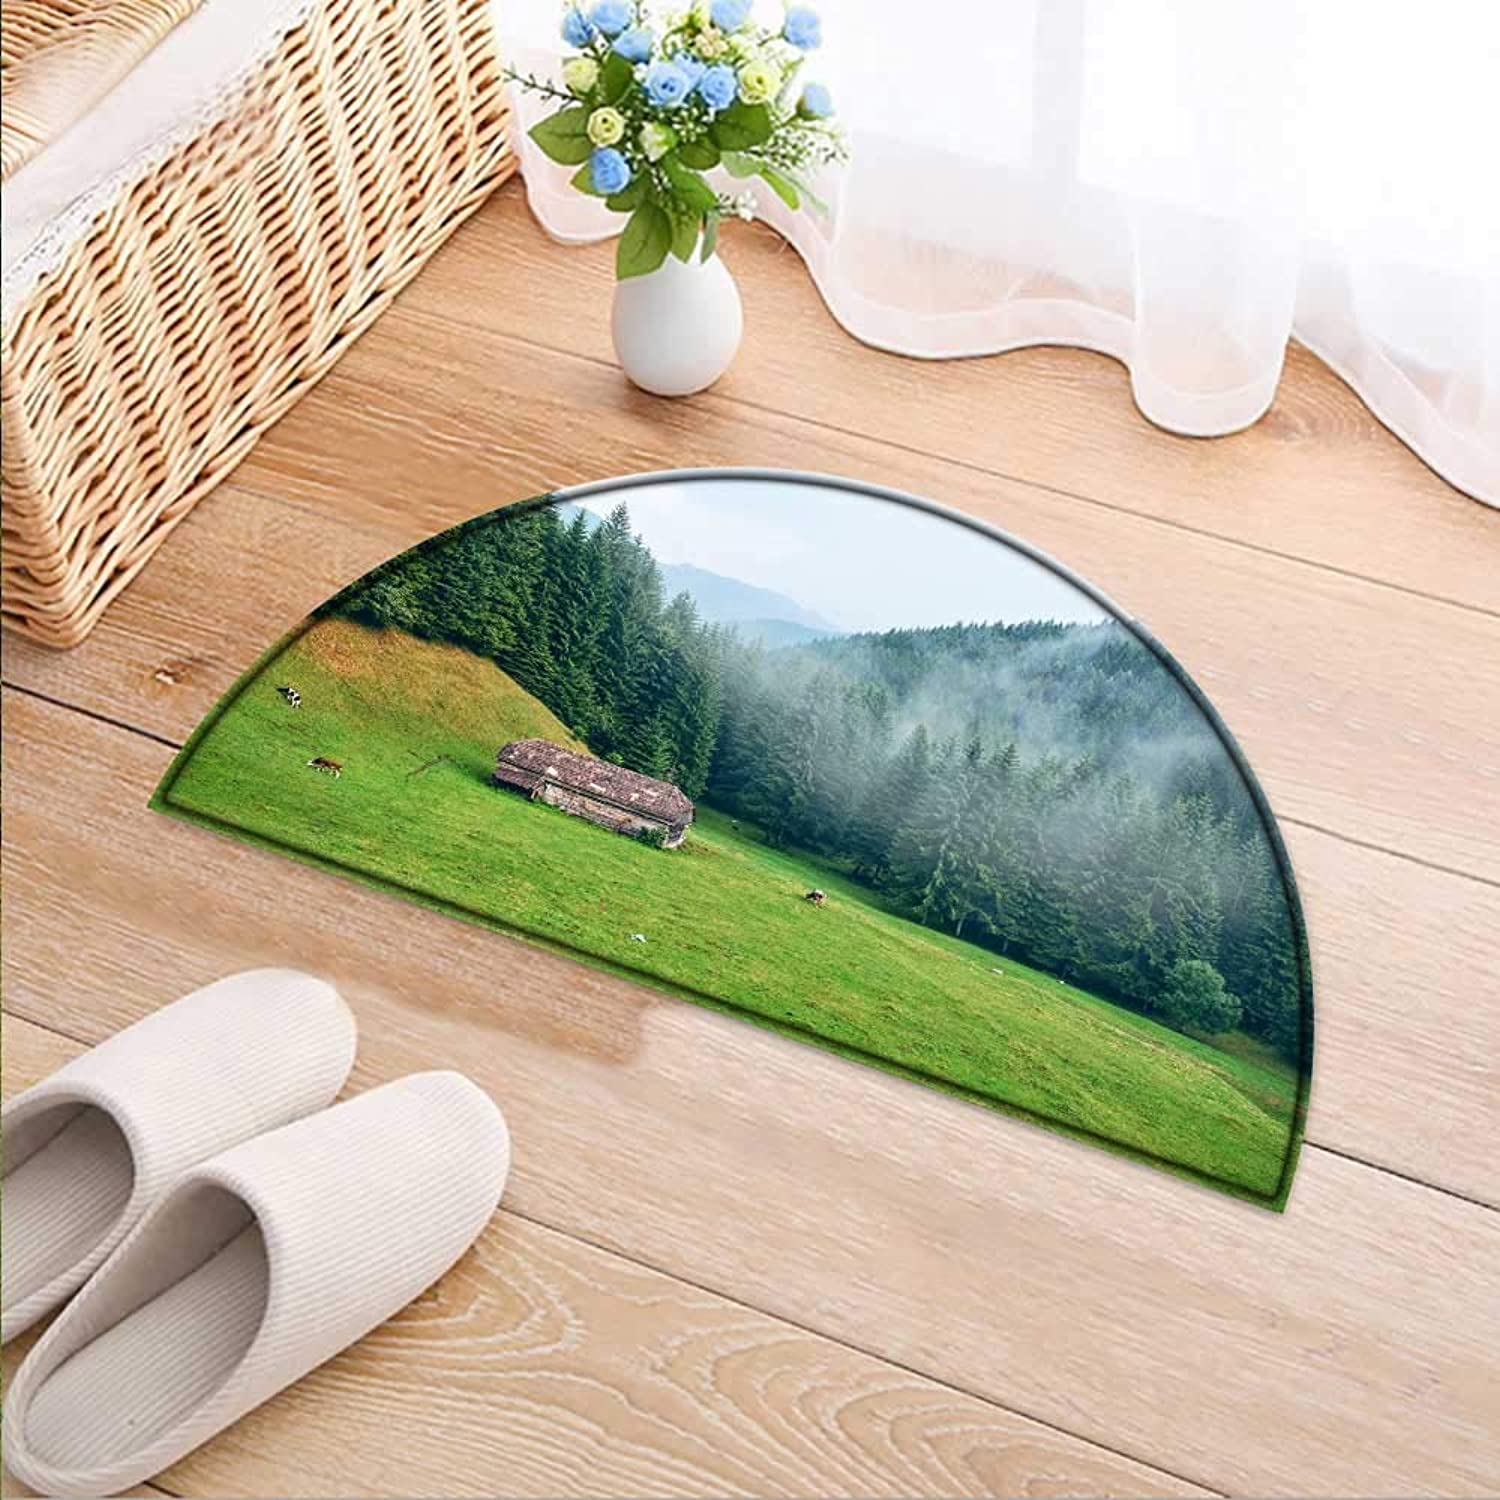 Entrance Hall Carpet The Large Forest and Meadow in The Mist Non Slip Rug W47 x H32 INCH